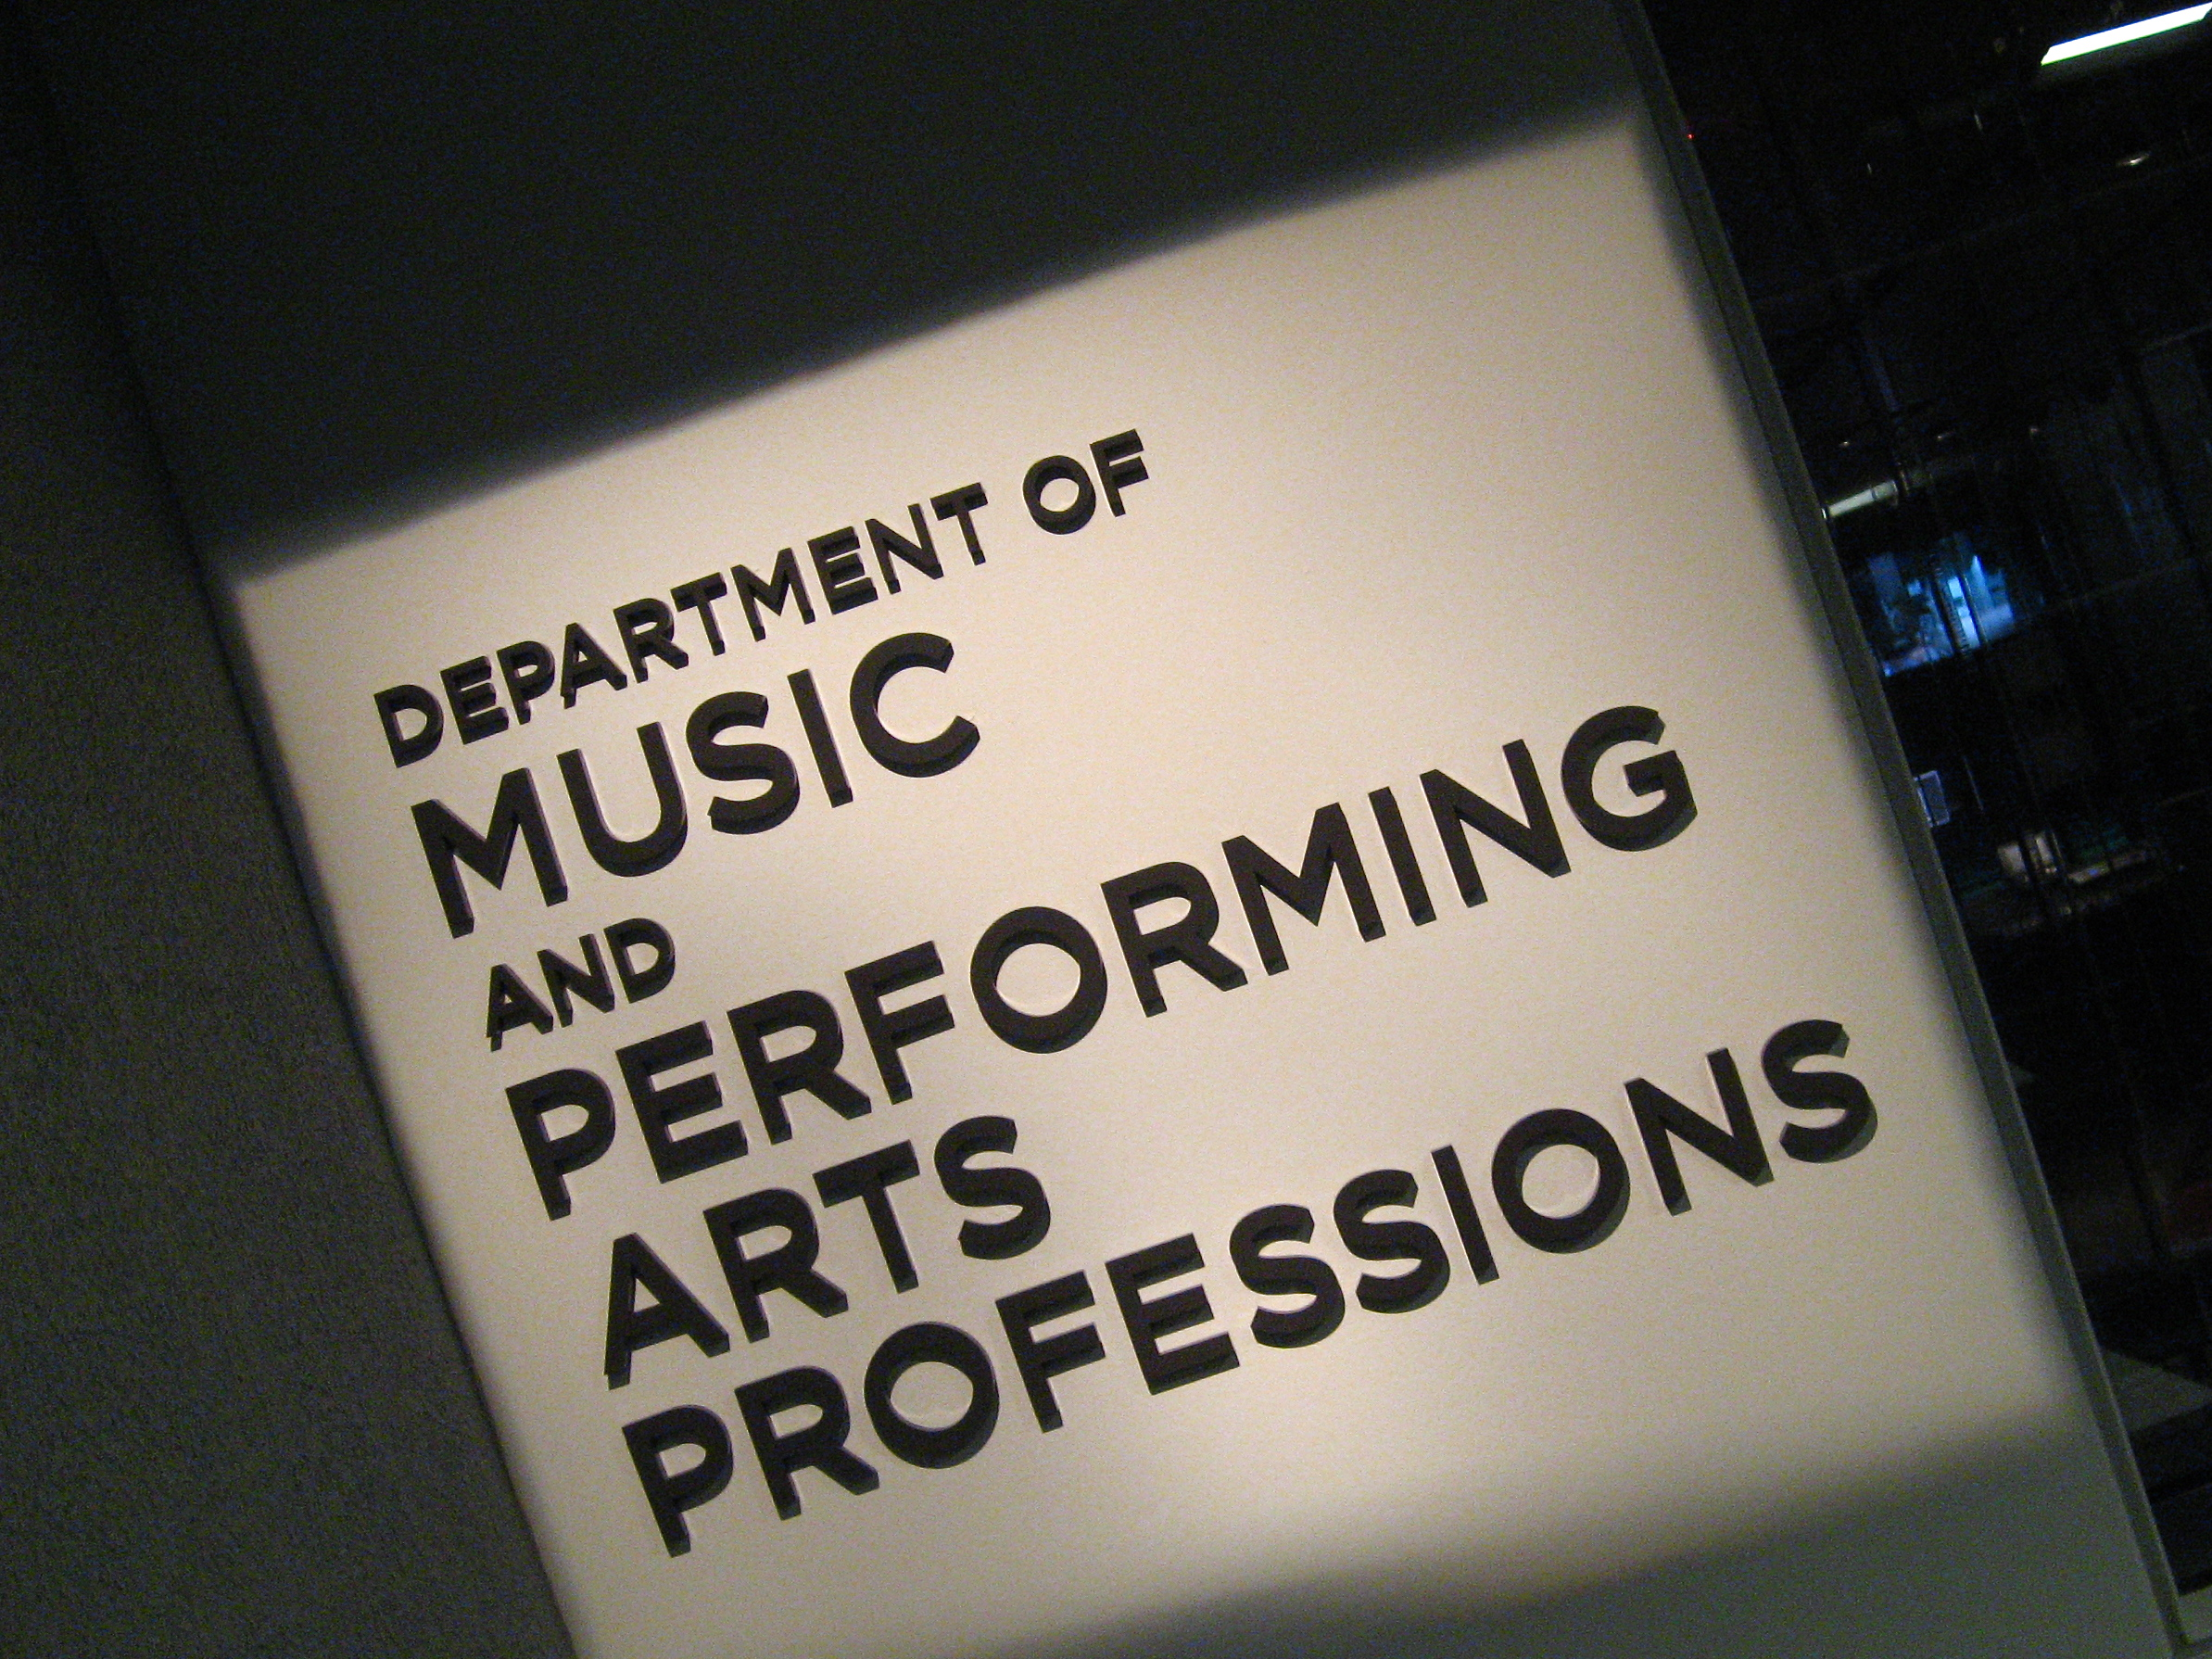 nyu-dept-music-perf-arts_3457-copy